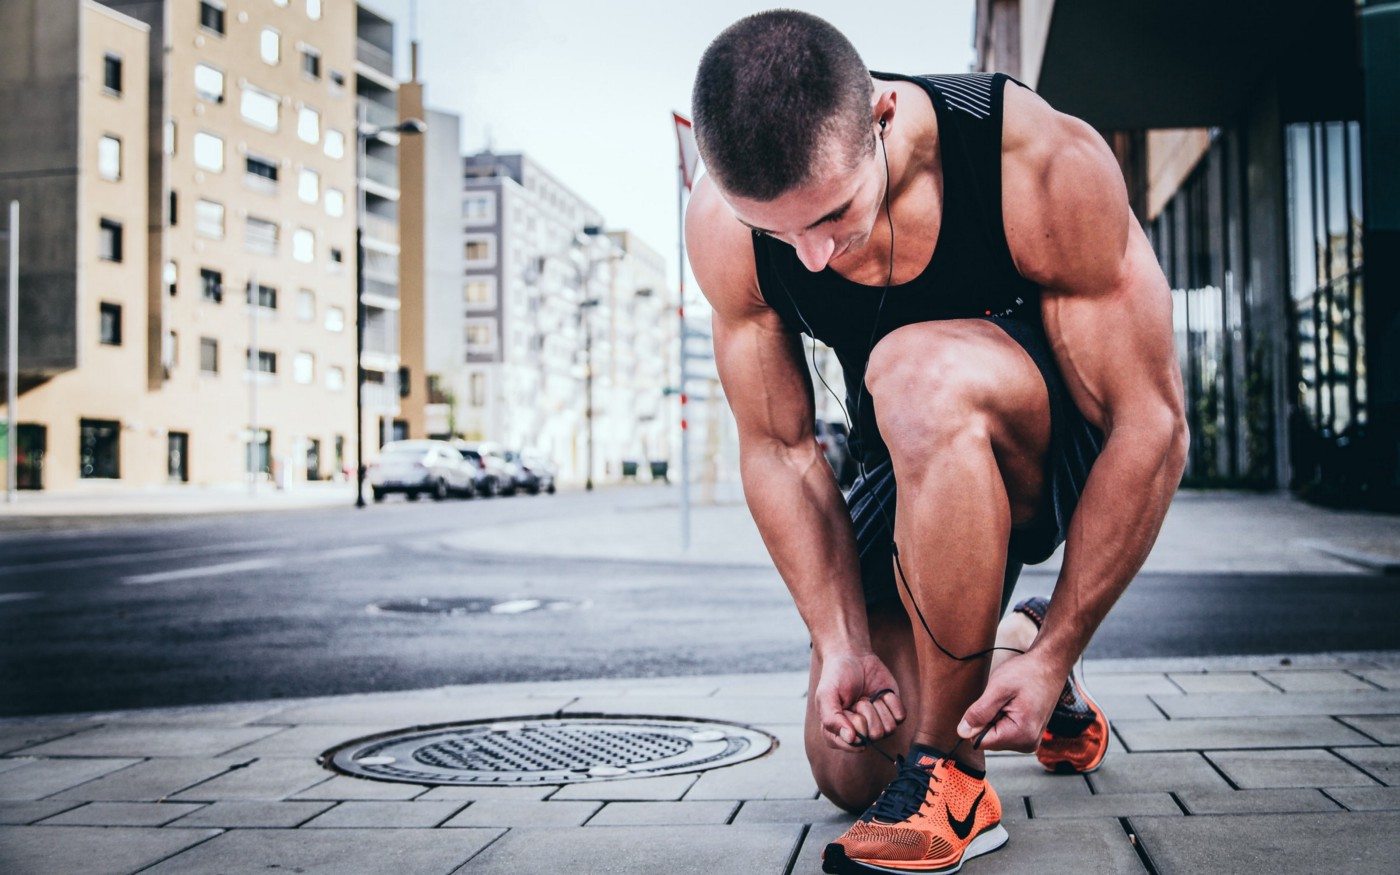 Fitness image of a man tying his shoe laces